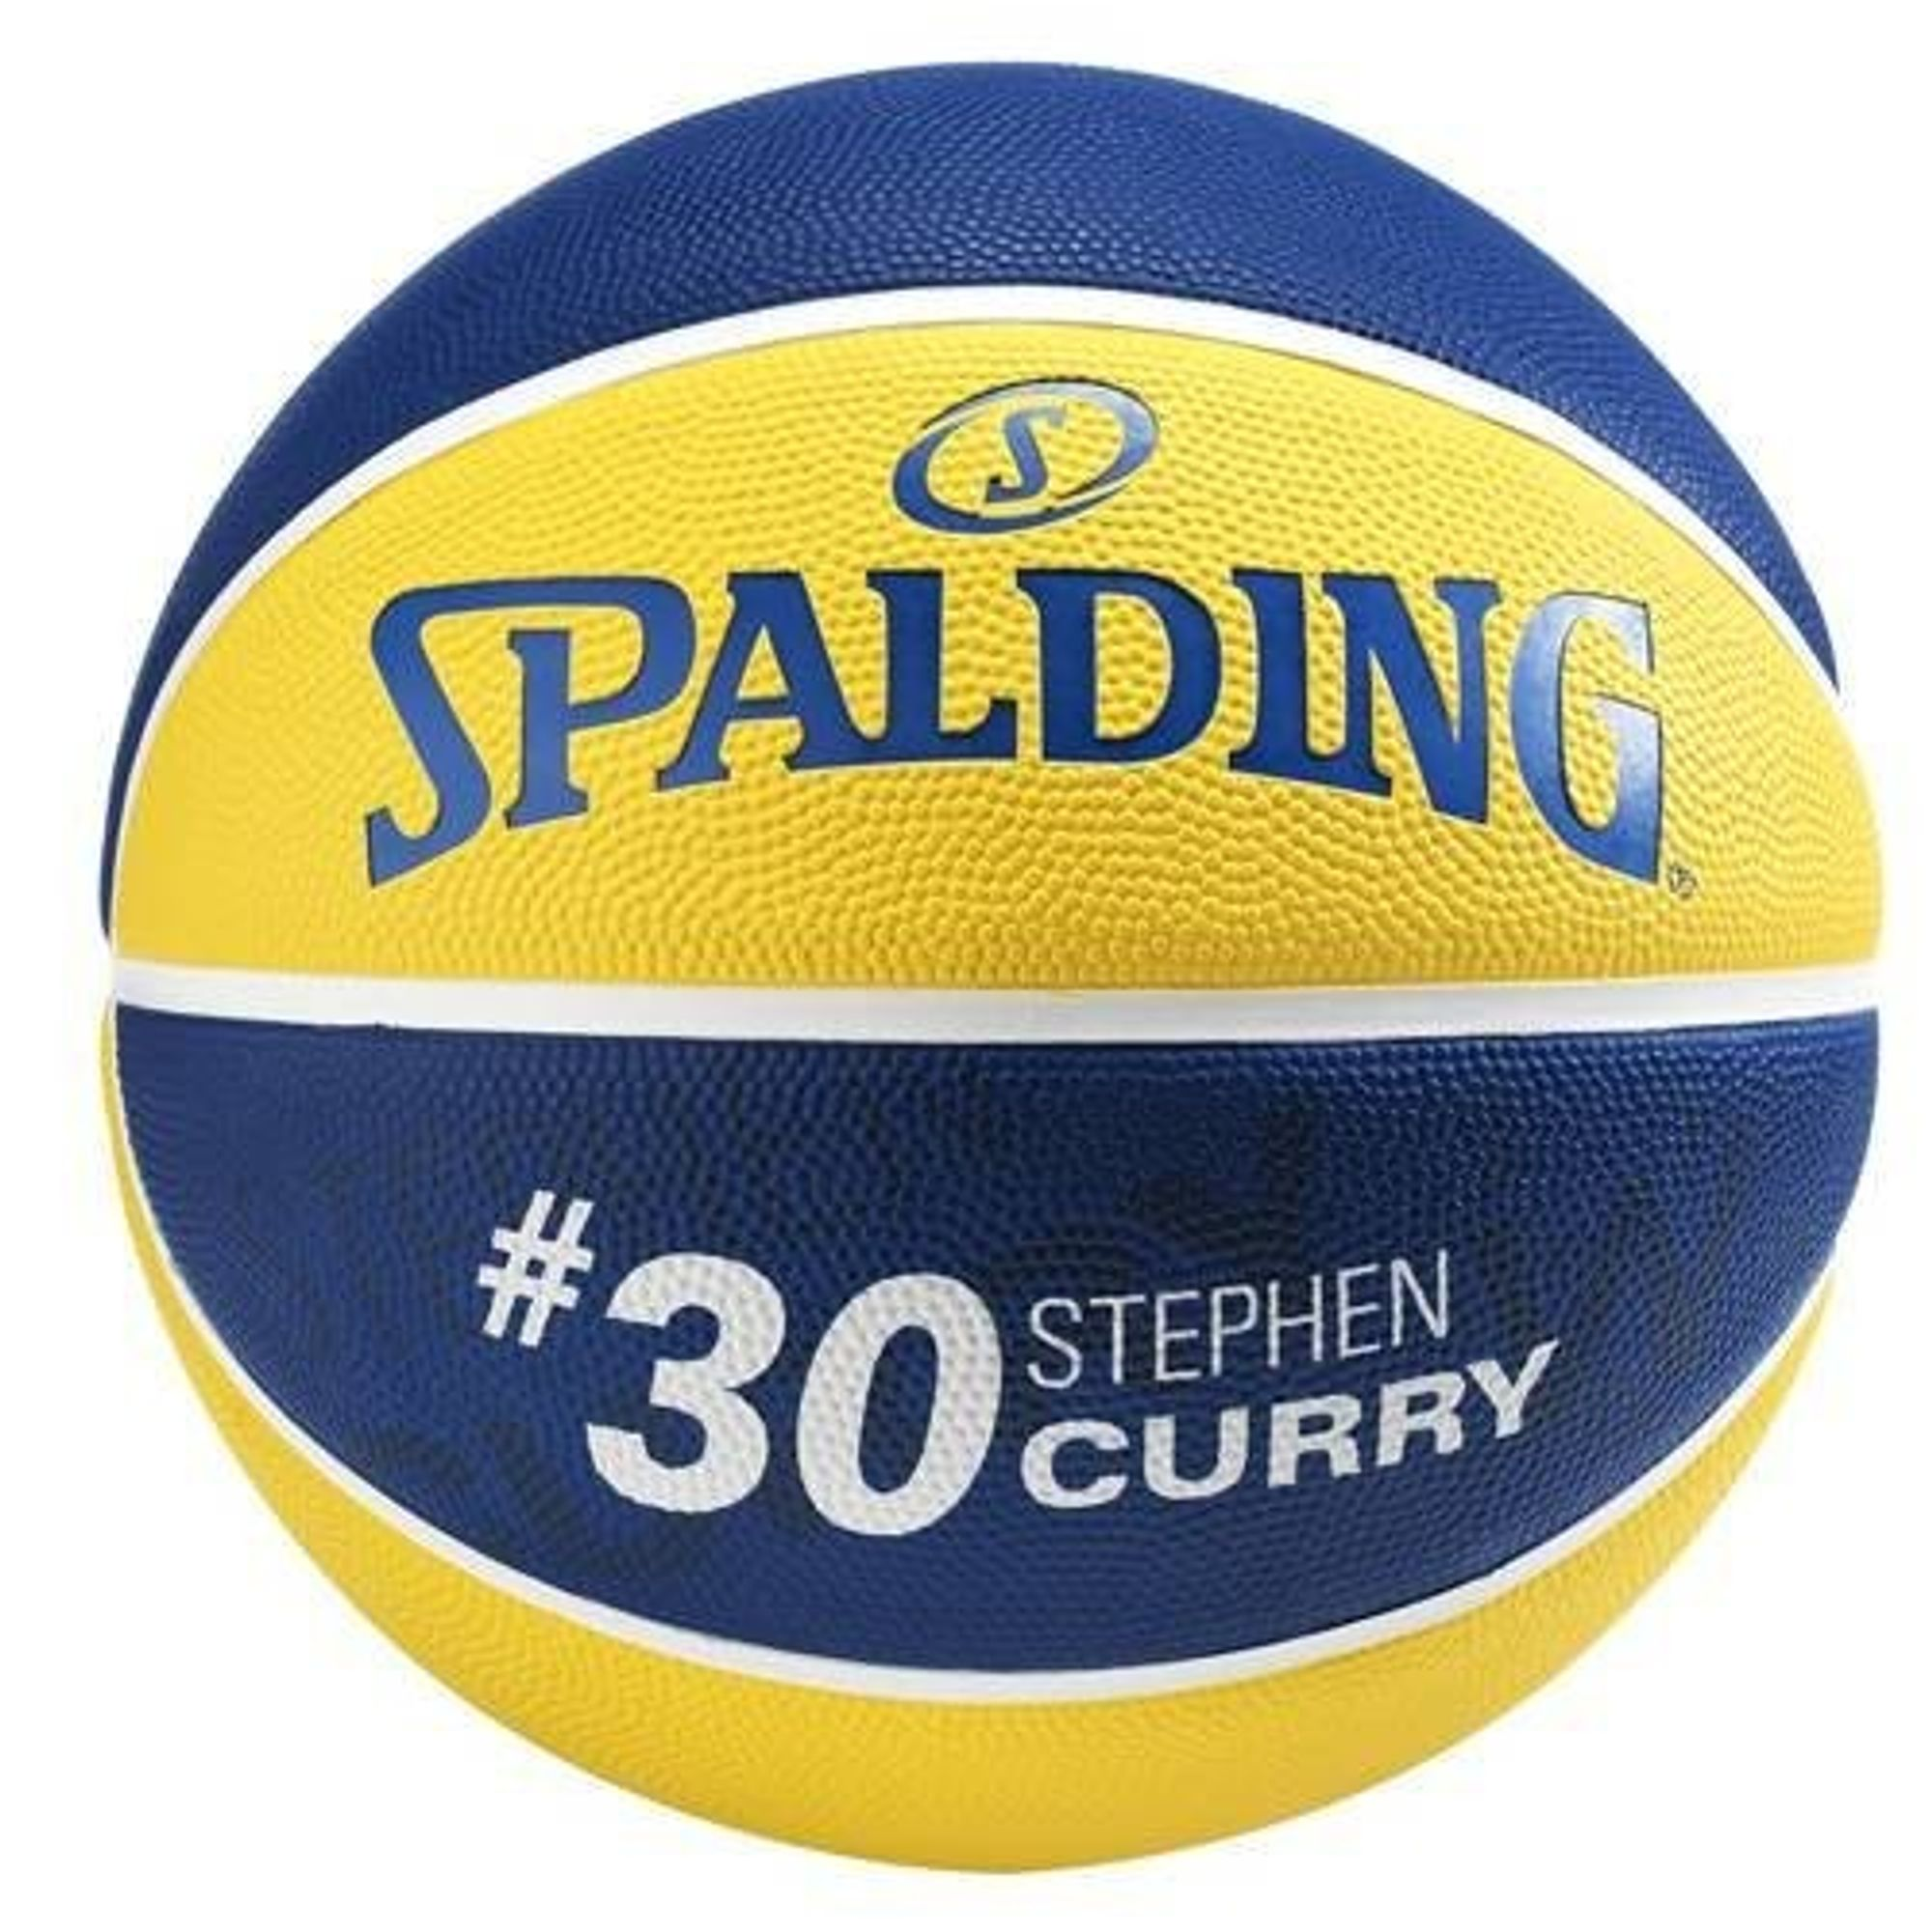 Spalding NBA PLAYER STEPHEN CURRY SZ.5 (83-400Z) - gelb/blau